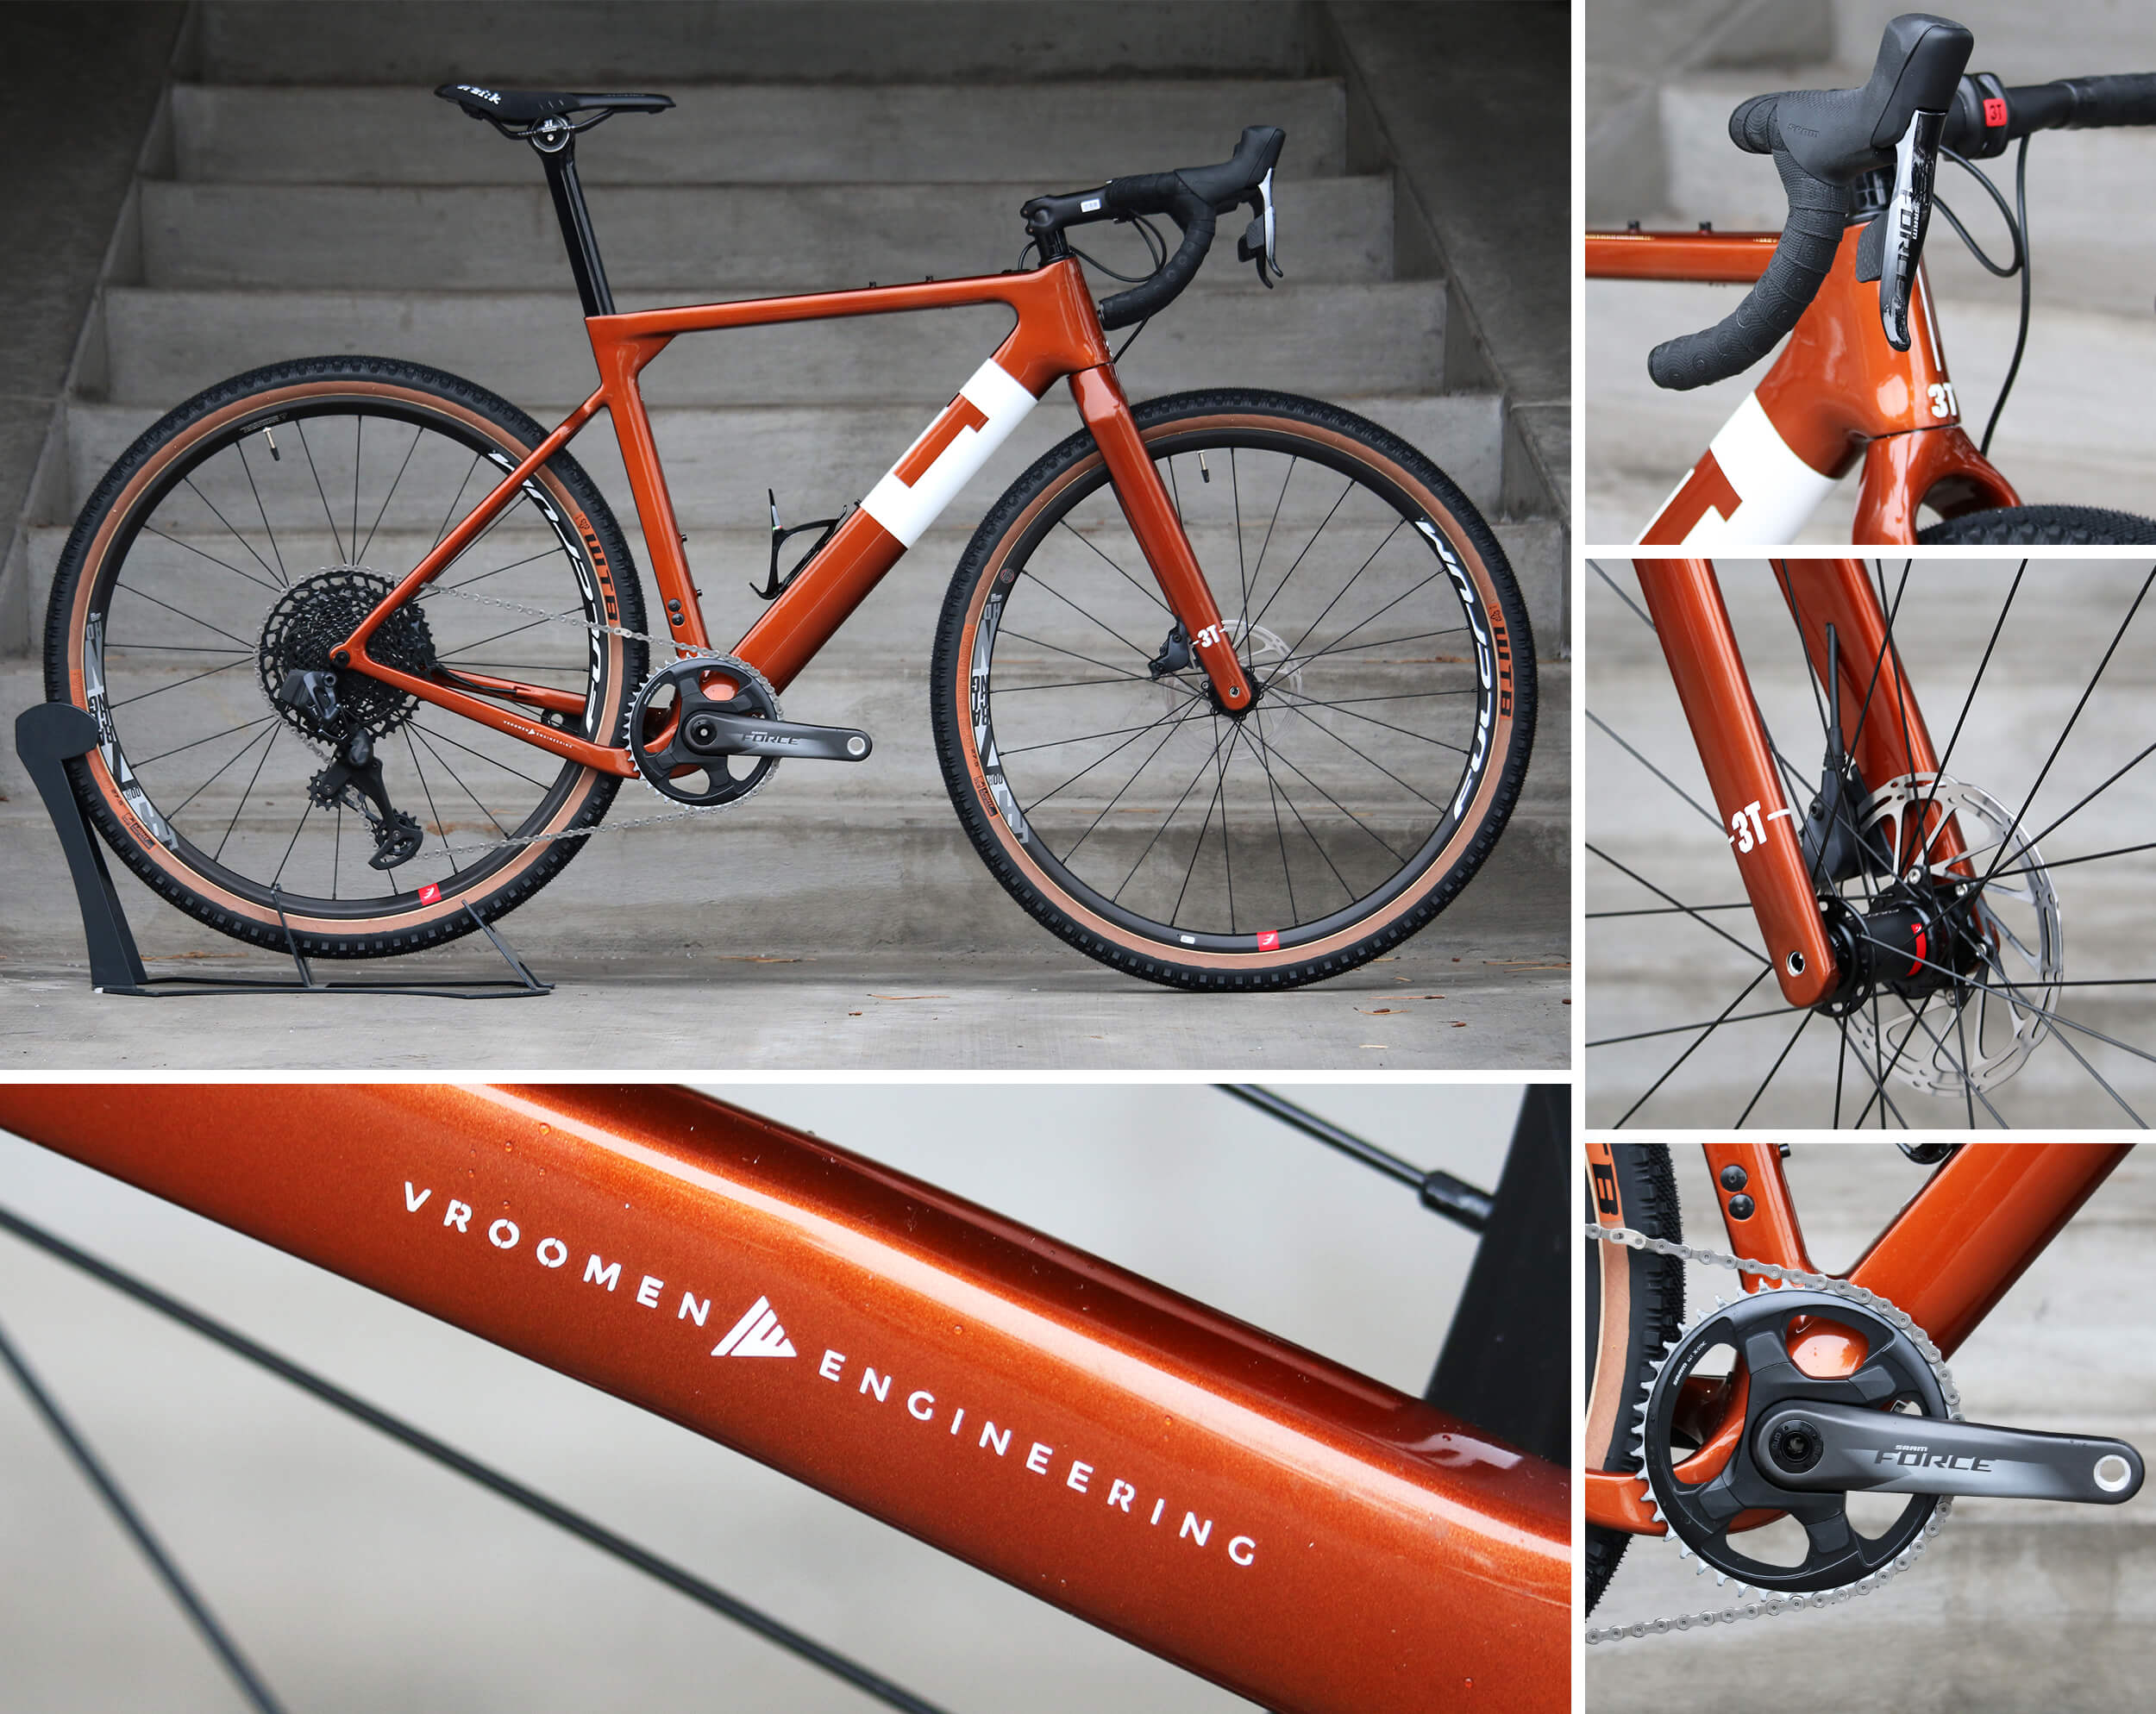 3T Exploro Force AXS - Contender Bicycles